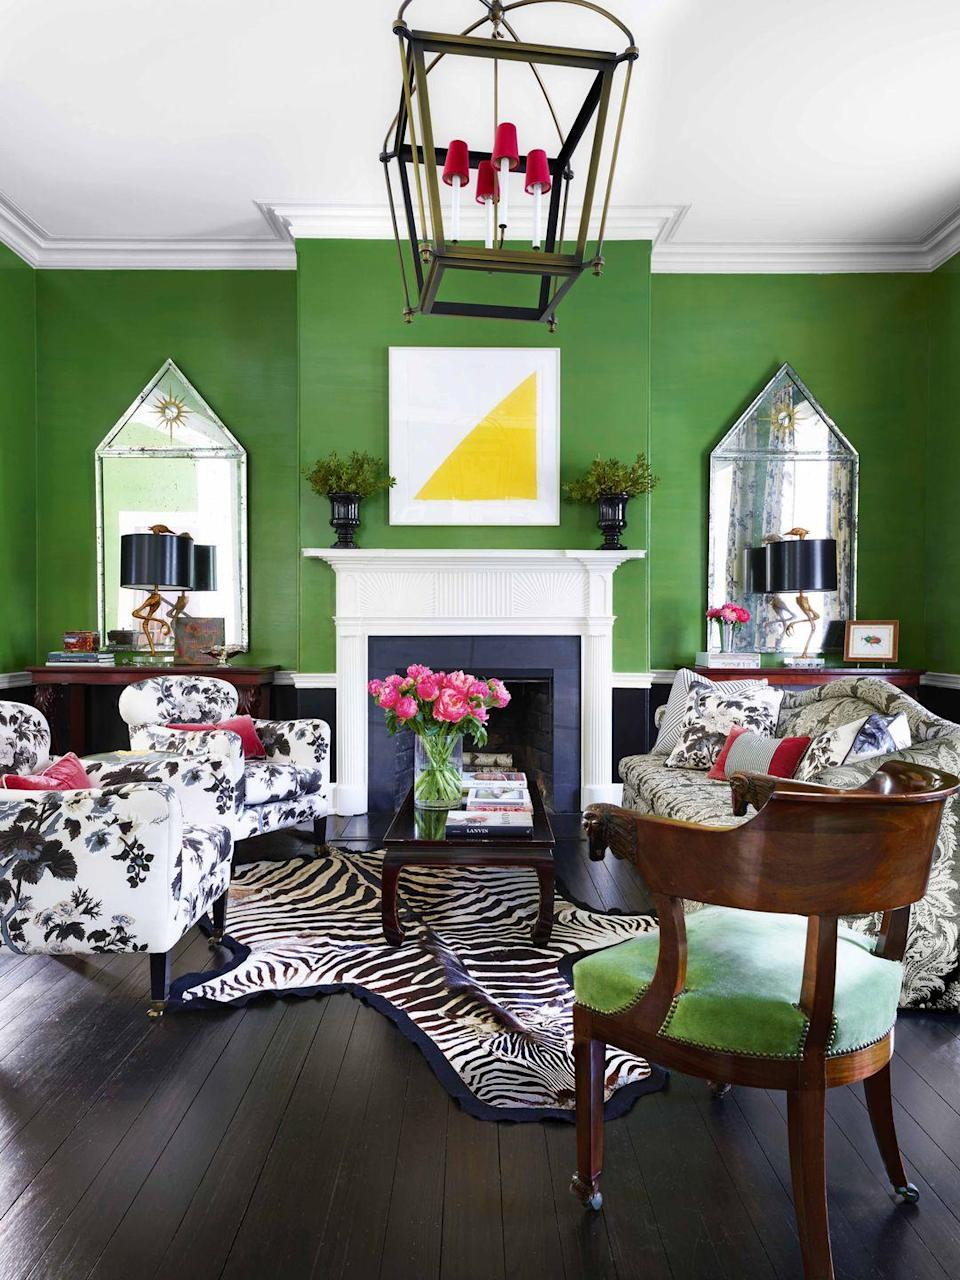 "<p>Black and white patterns pop against vivid green lacquered walls in this Washington D.C. living room by designer <a href=""https://branca.com"" rel=""nofollow noopener"" target=""_blank"" data-ylk=""slk:Alessandra Branca"" class=""link rapid-noclick-resp"">Alessandra Branca</a>. The sofa and chairs are covered in a <a href=""https://fschumacher.com"" rel=""nofollow noopener"" target=""_blank"" data-ylk=""slk:Schumacher"" class=""link rapid-noclick-resp"">Schumacher</a> fabric. The artwork is by Ellsworth Kelly. </p><p><a class=""link rapid-noclick-resp"" href=""https://www.sherwin-williams.com/homeowners/color/find-and-explore-colors/paint-colors-by-family/SW6924-direct-green"" rel=""nofollow noopener"" target=""_blank"" data-ylk=""slk:Get the Look"">Get the Look</a></p>"